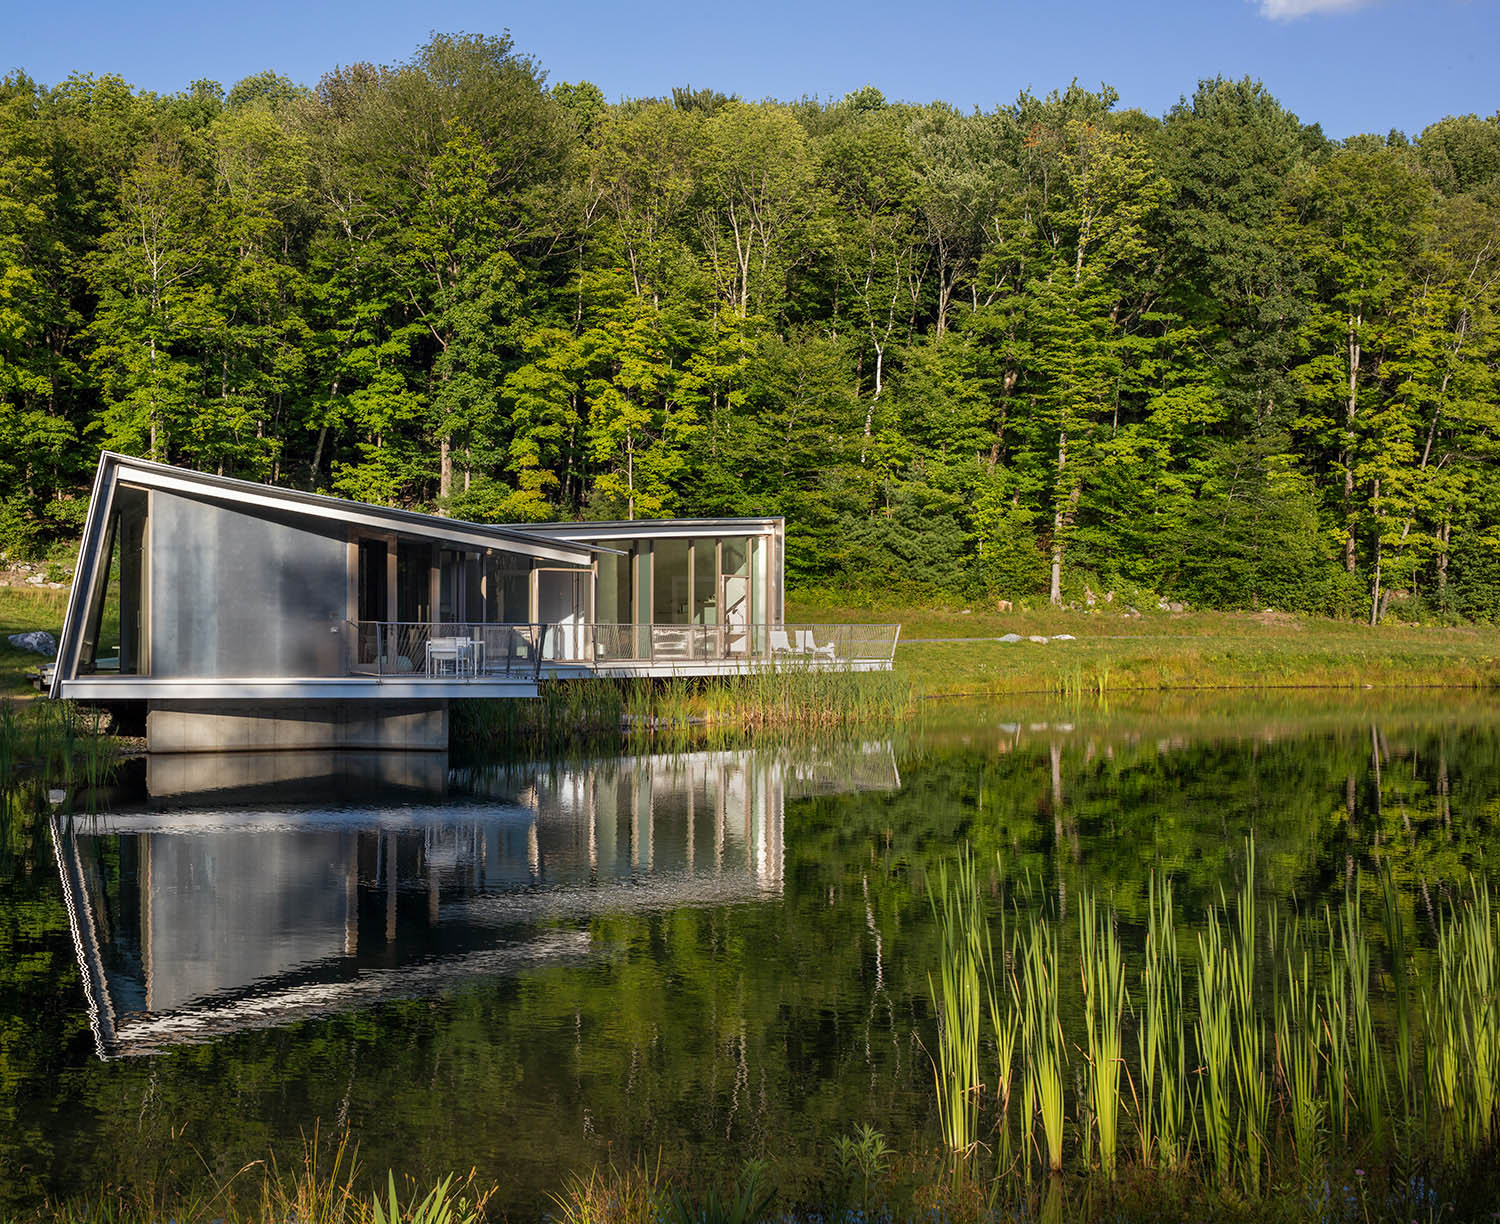 The lightness and delicacy of the forest and reeds is reflected in the floating posture of the house, suspended above the water on five pier foundations.  Paul Warchol